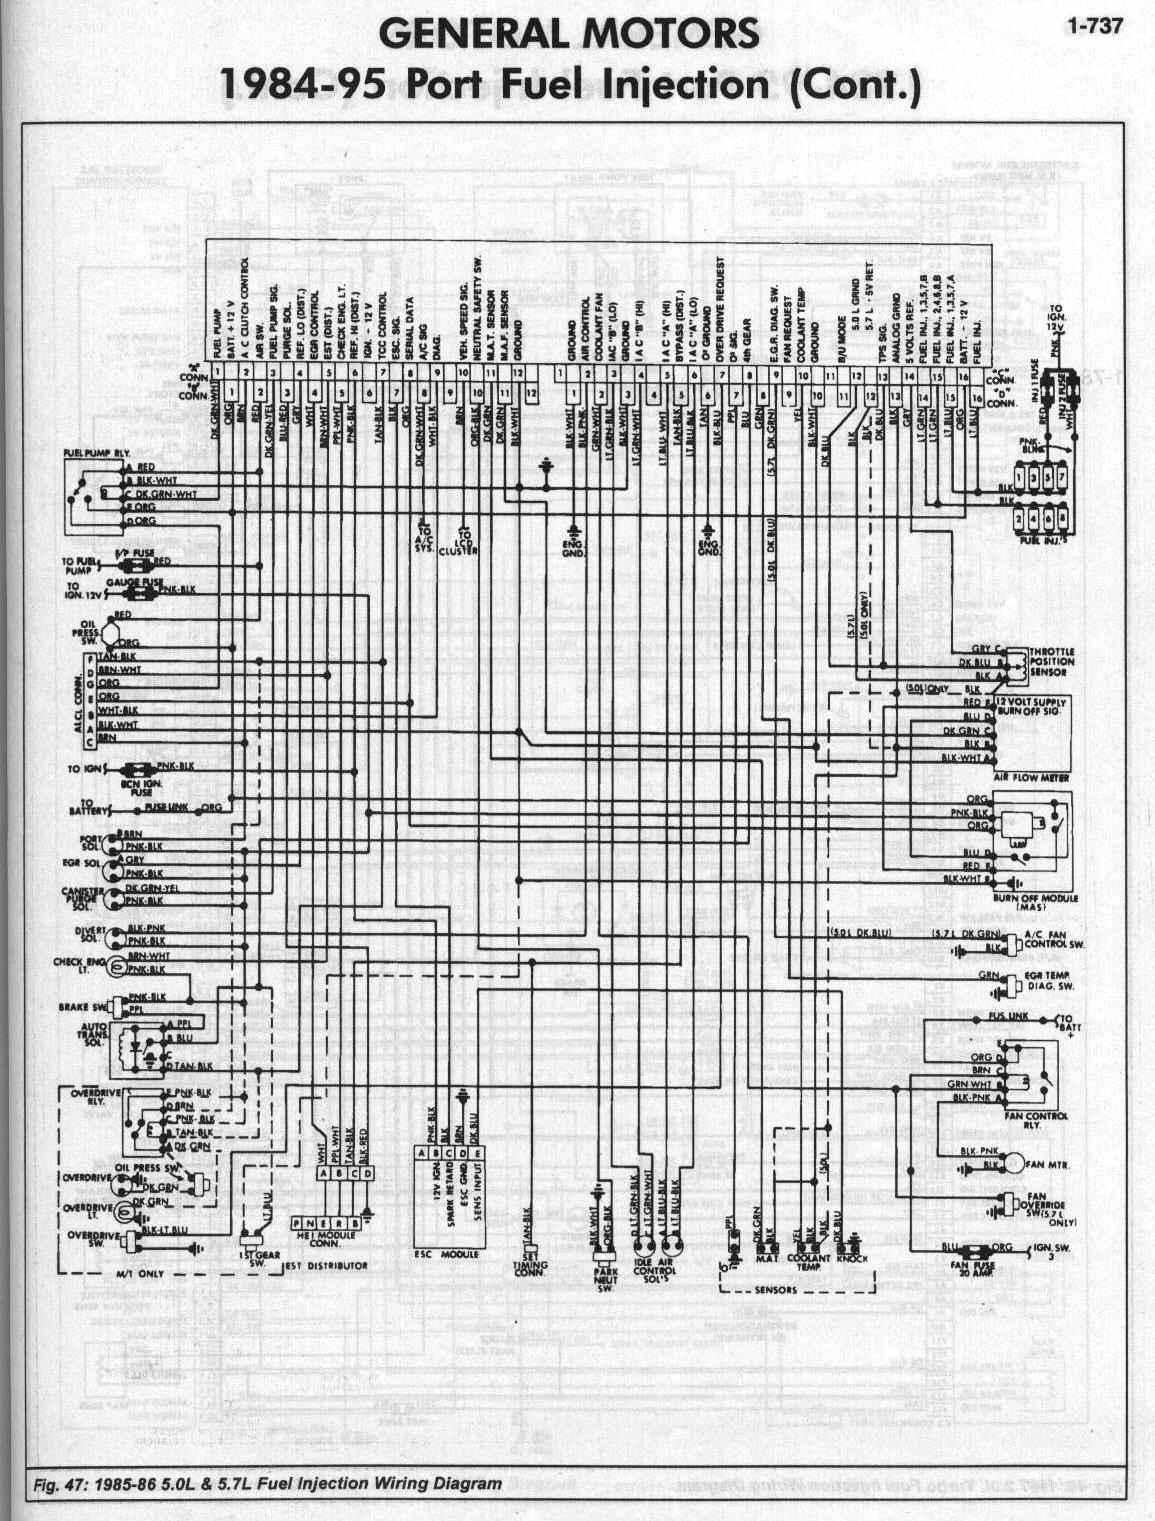 89 Camaro Wiring Diagram Trusted 1988 Corvette Ac My 85 Z28 And Eprom Project 1990